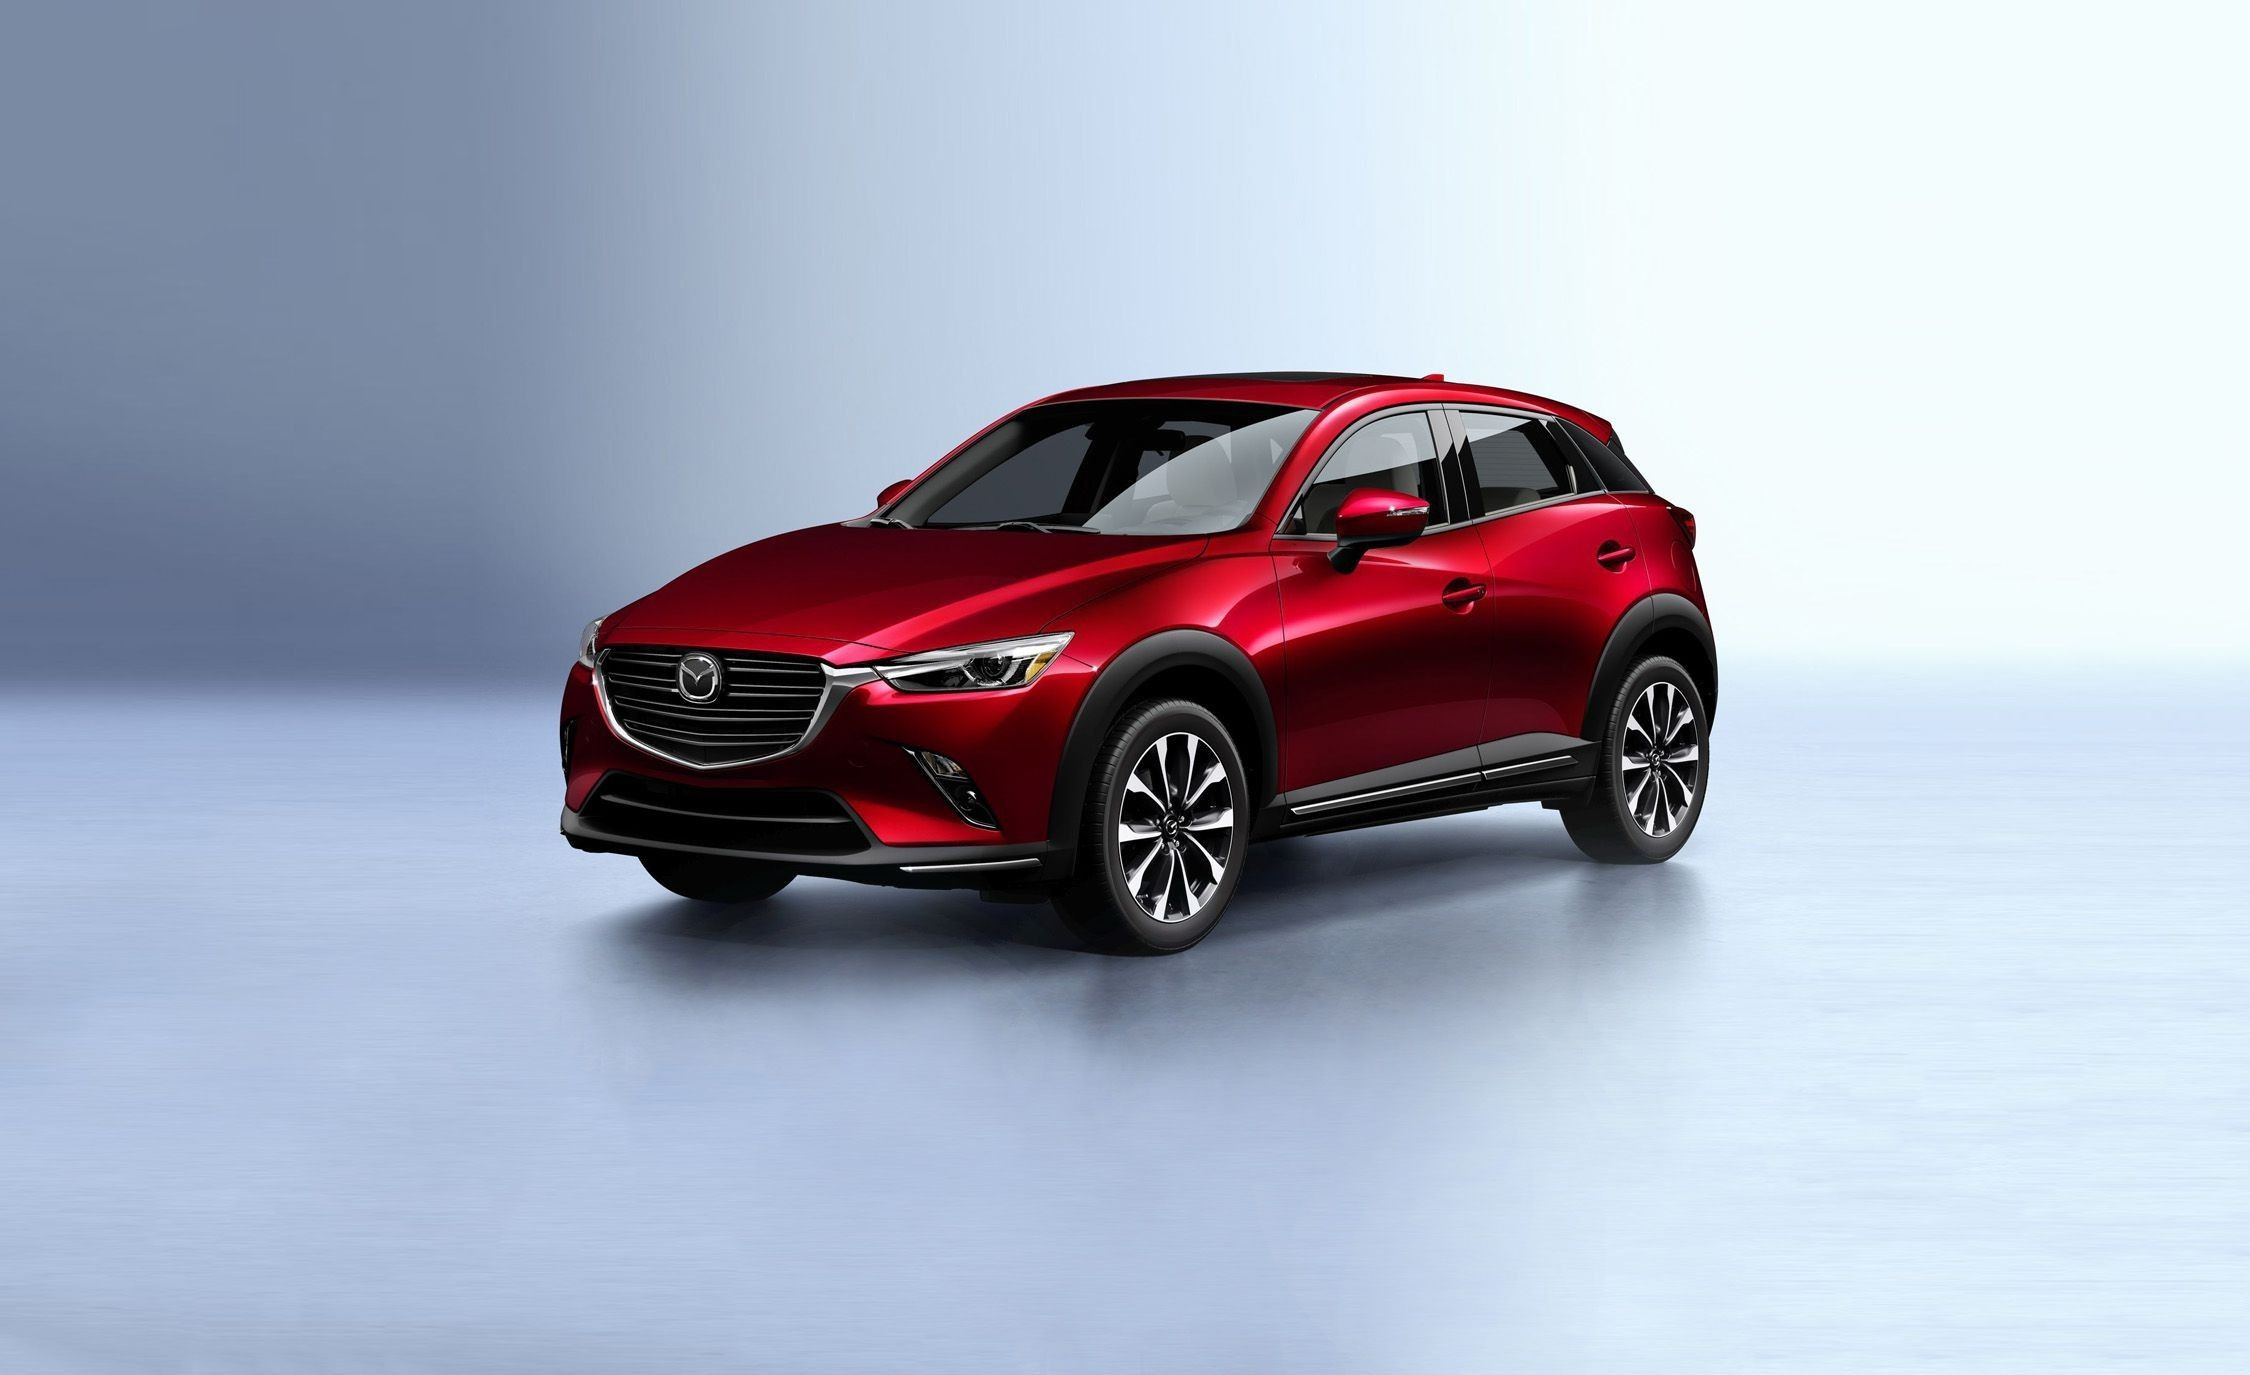 2019 Mazda Remote Start Price in 2020 Mazda, Mazda cx 9